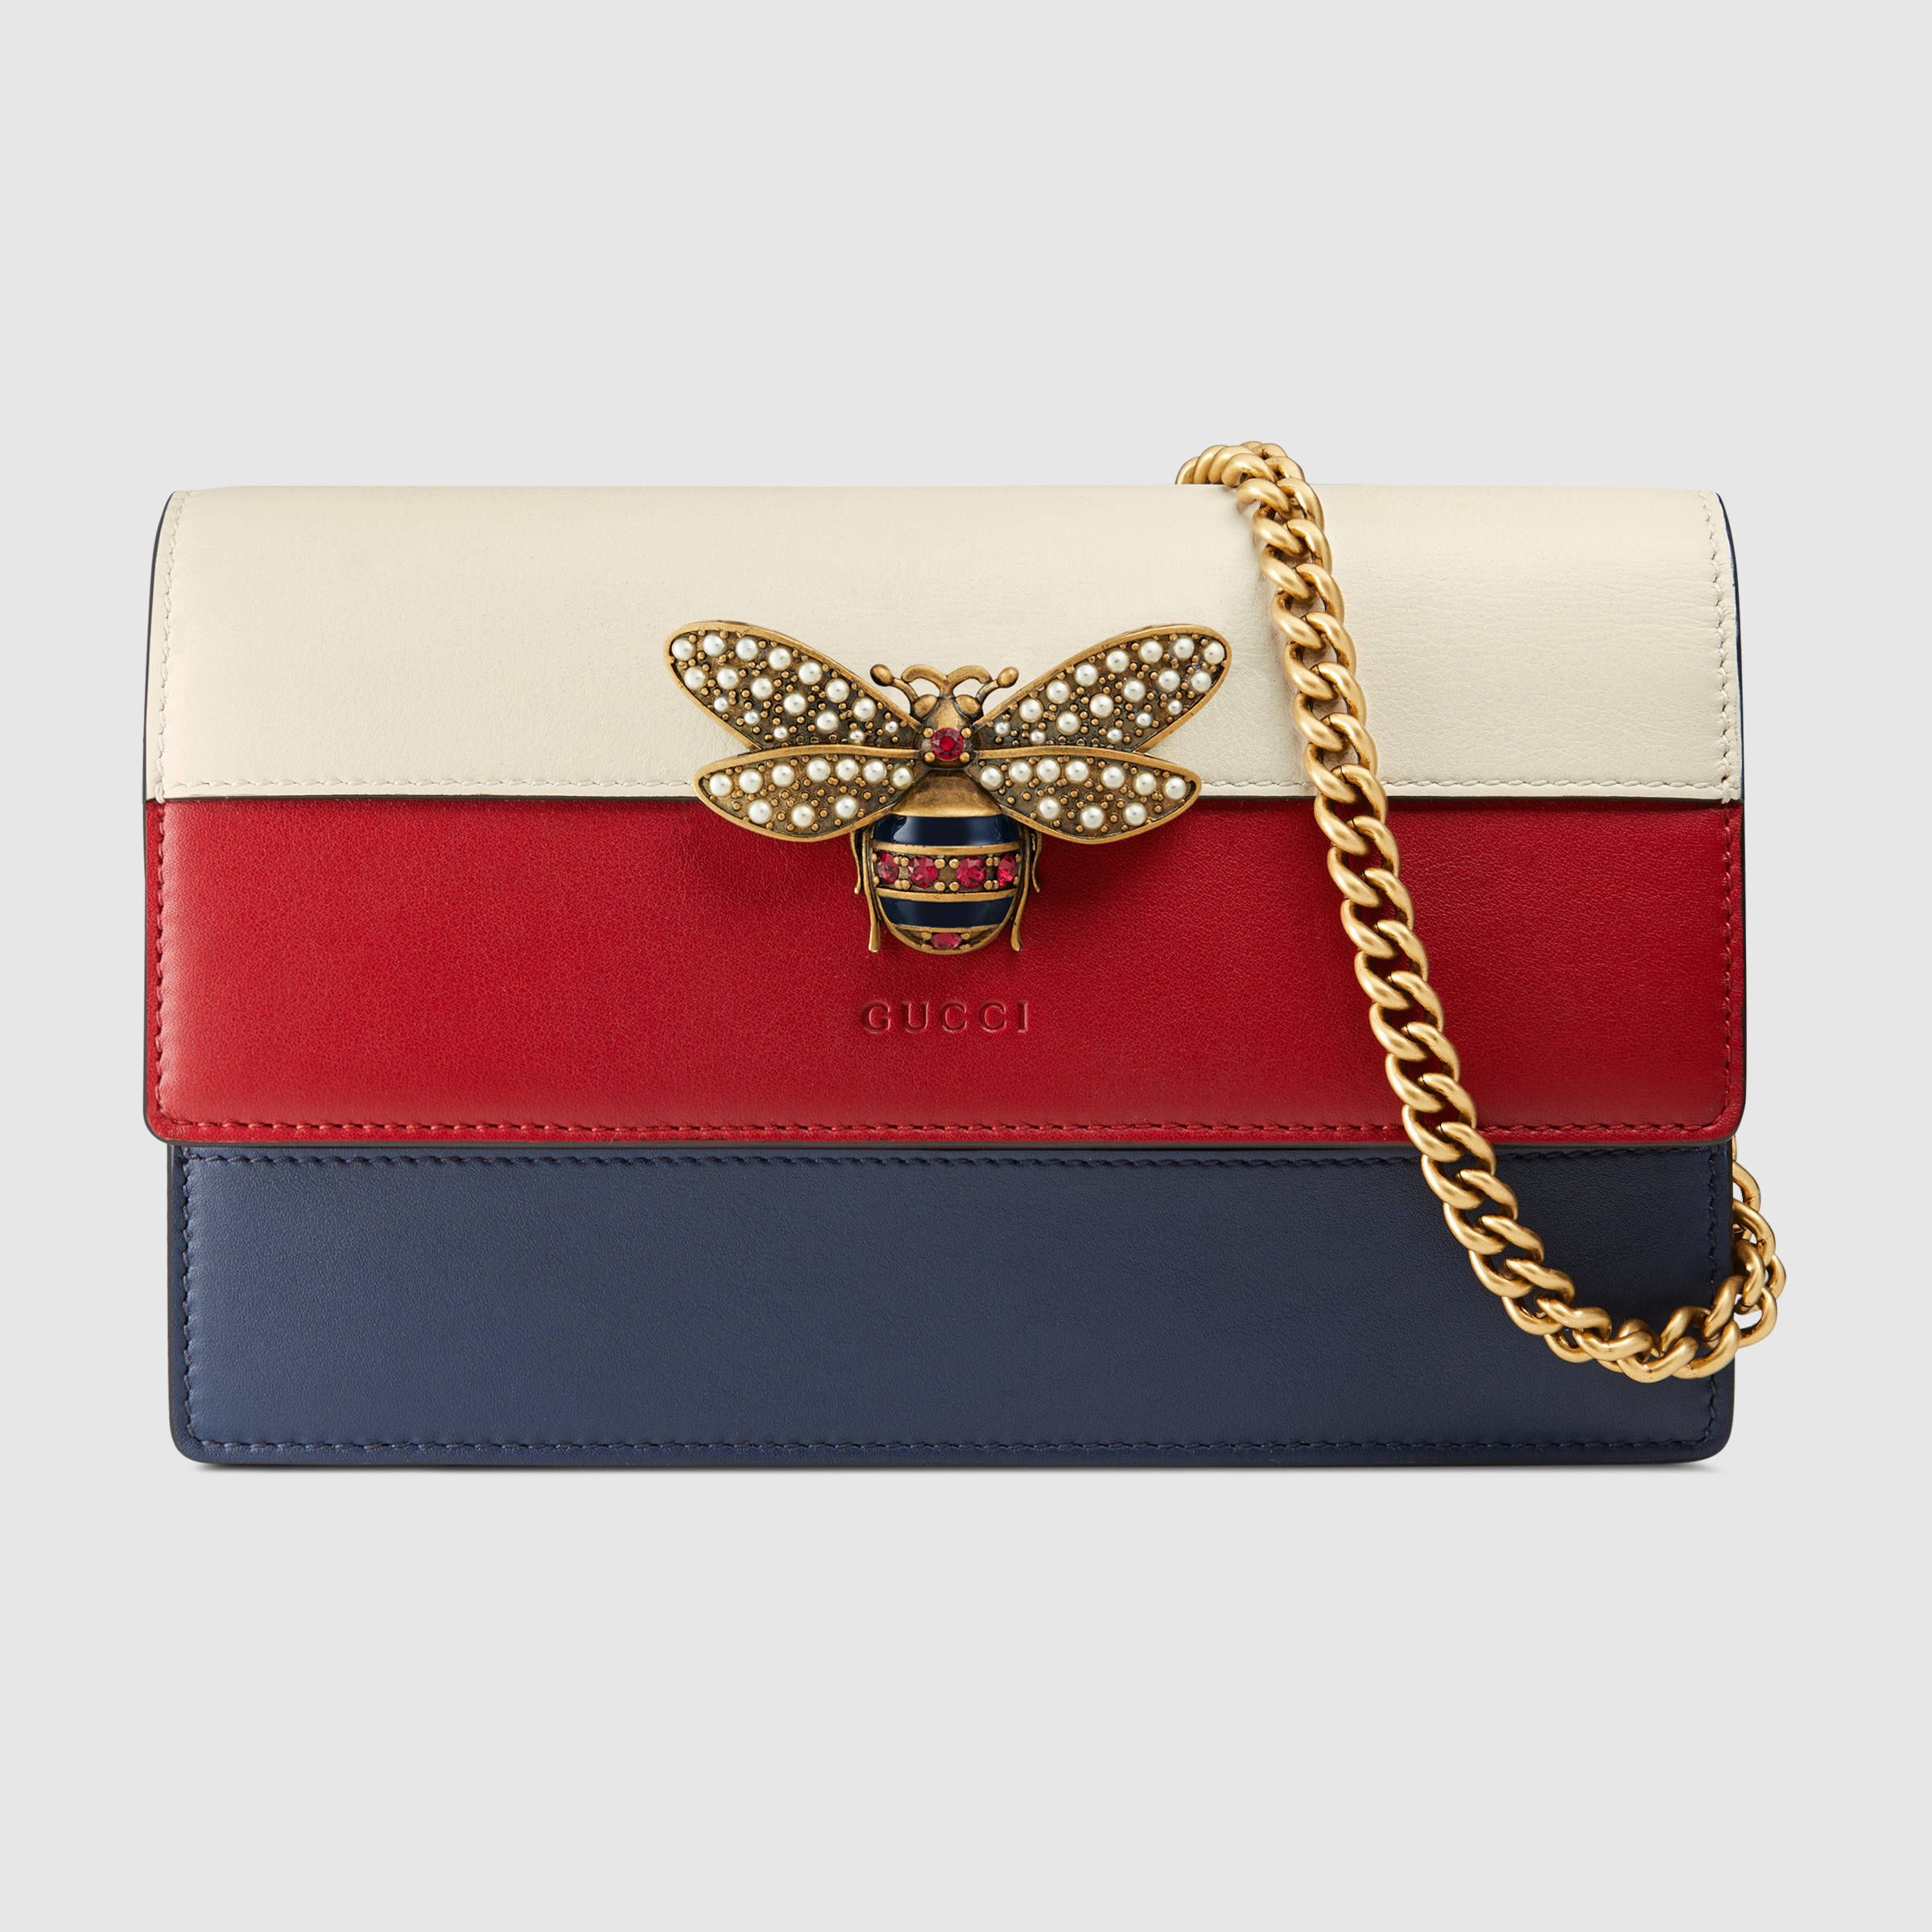 5757fe3c2f39 Queen Margaret leather mini bag in 2019 | Handbags to buy | Gucci ...